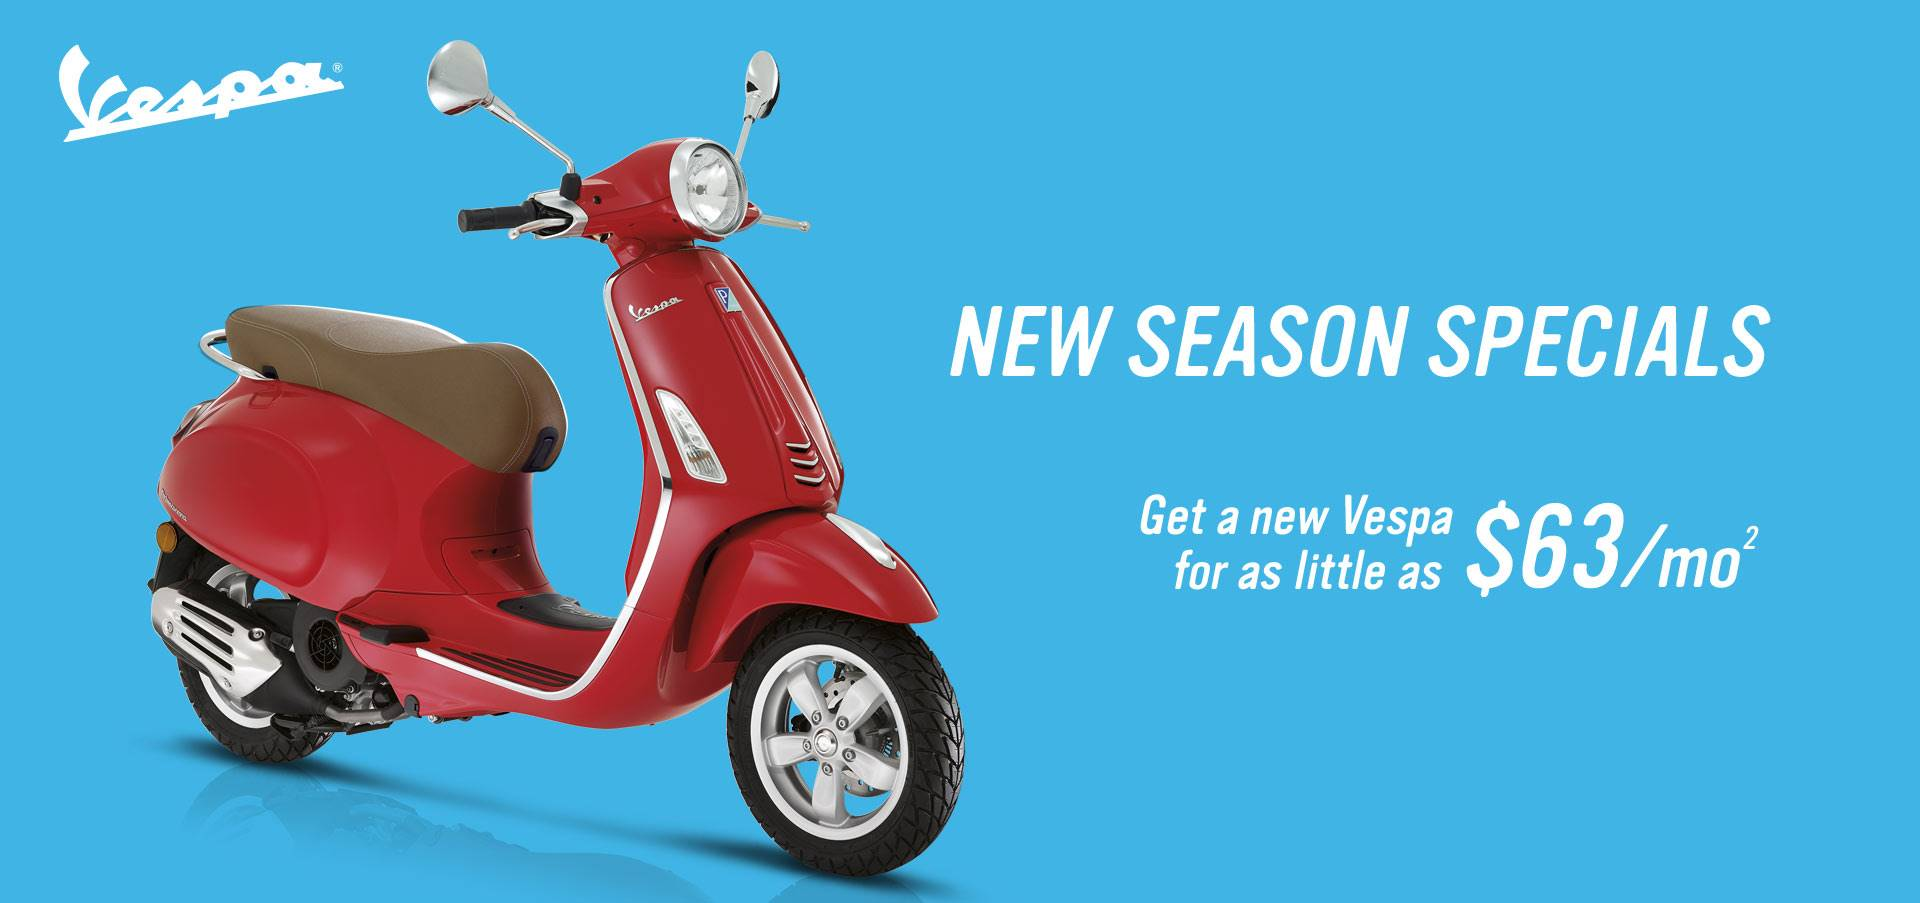 Vespa - New Season Specials